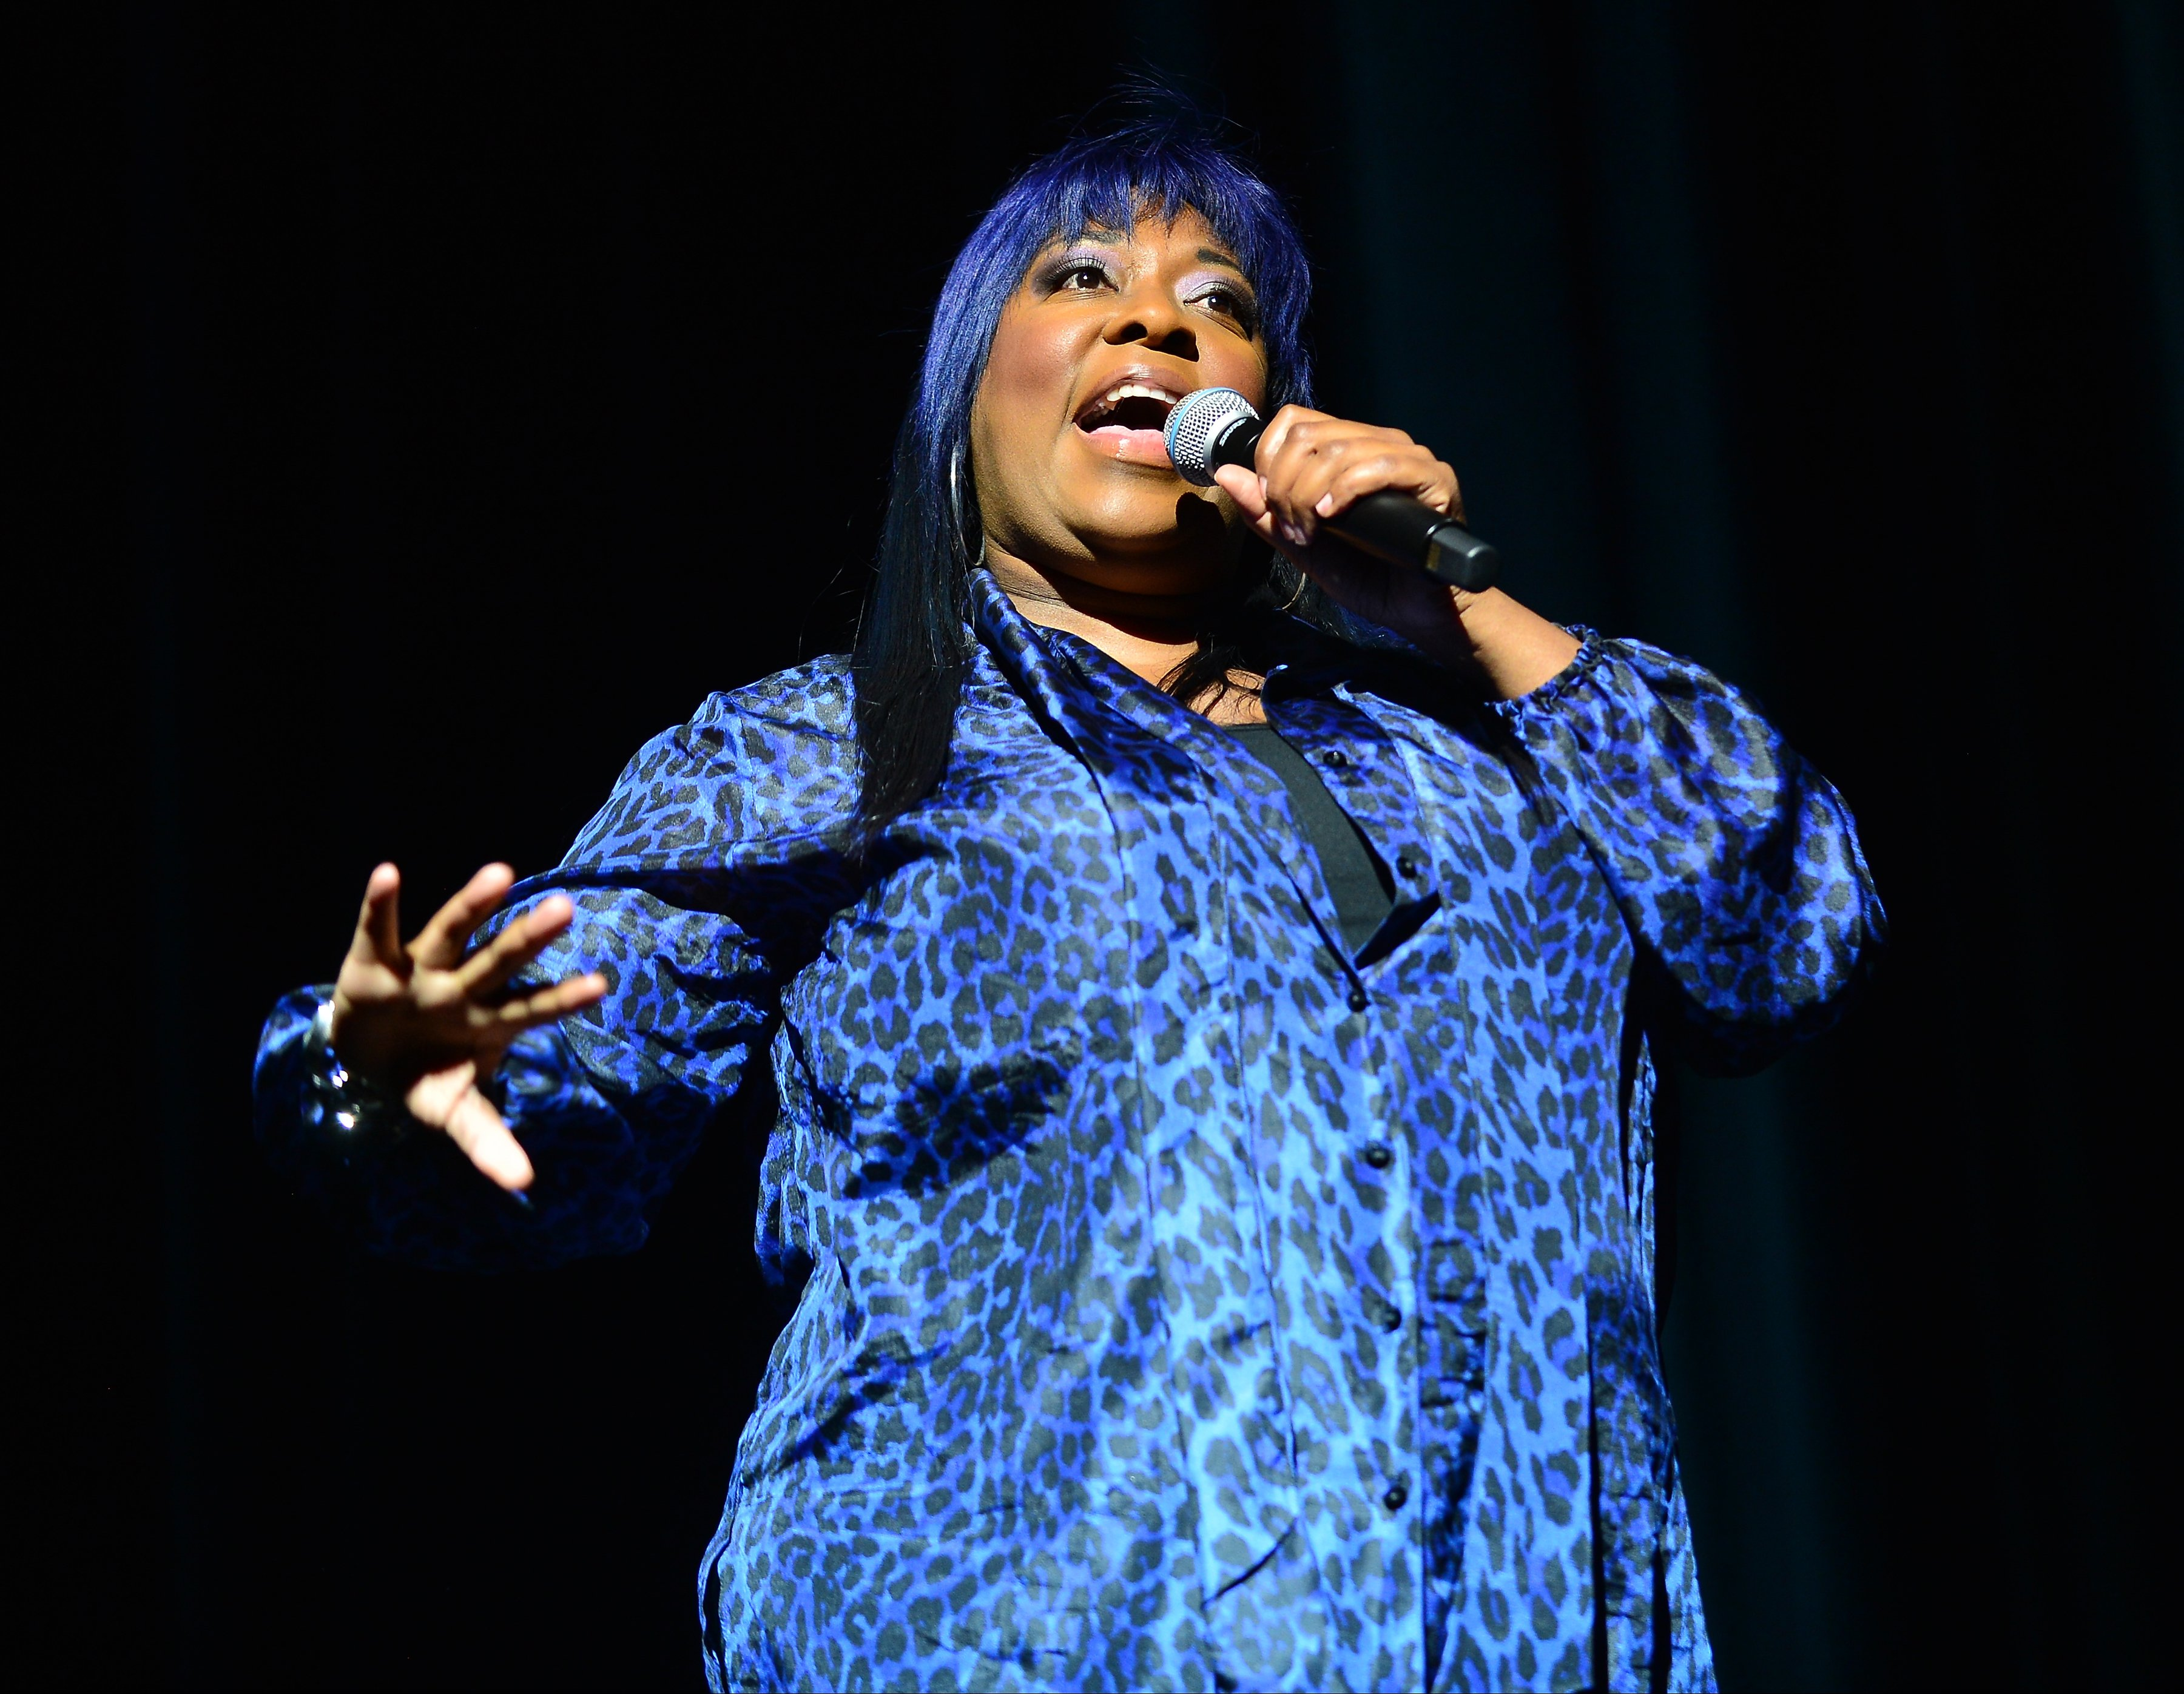 Comedian Loni Love performs during the 8th Annual Memorial Day Weekend Comedy Festival at James L Knight Center | Photo: Getty Images